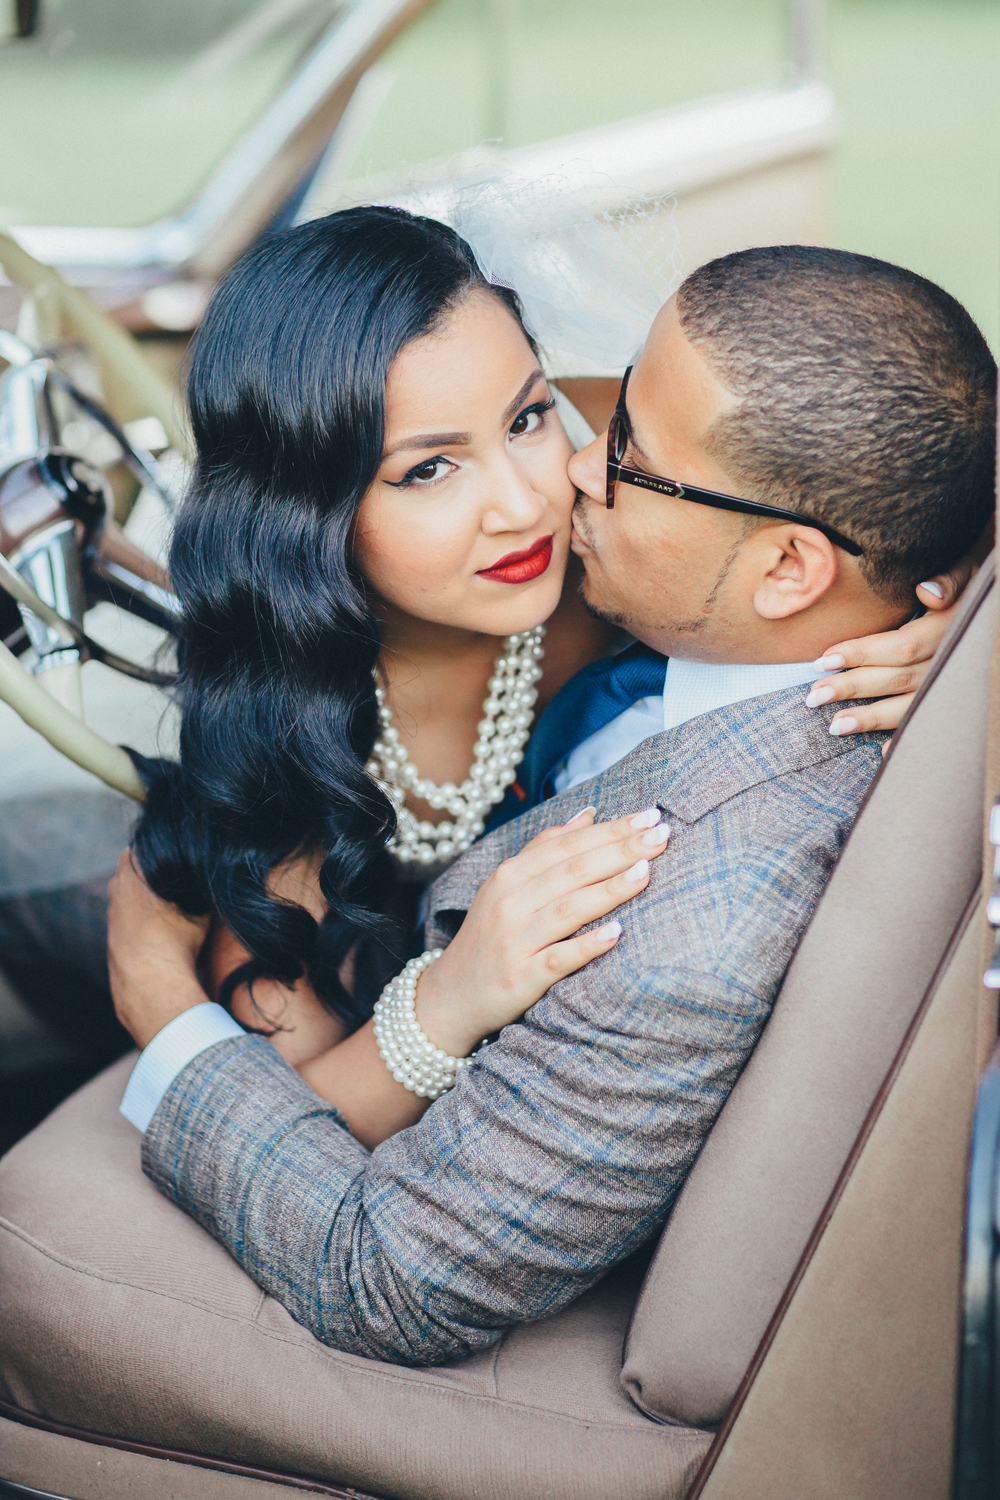 Vintage Car Engagement Photography New York Engagement Photographer Boris Zaretsky_B2C9068.jpg